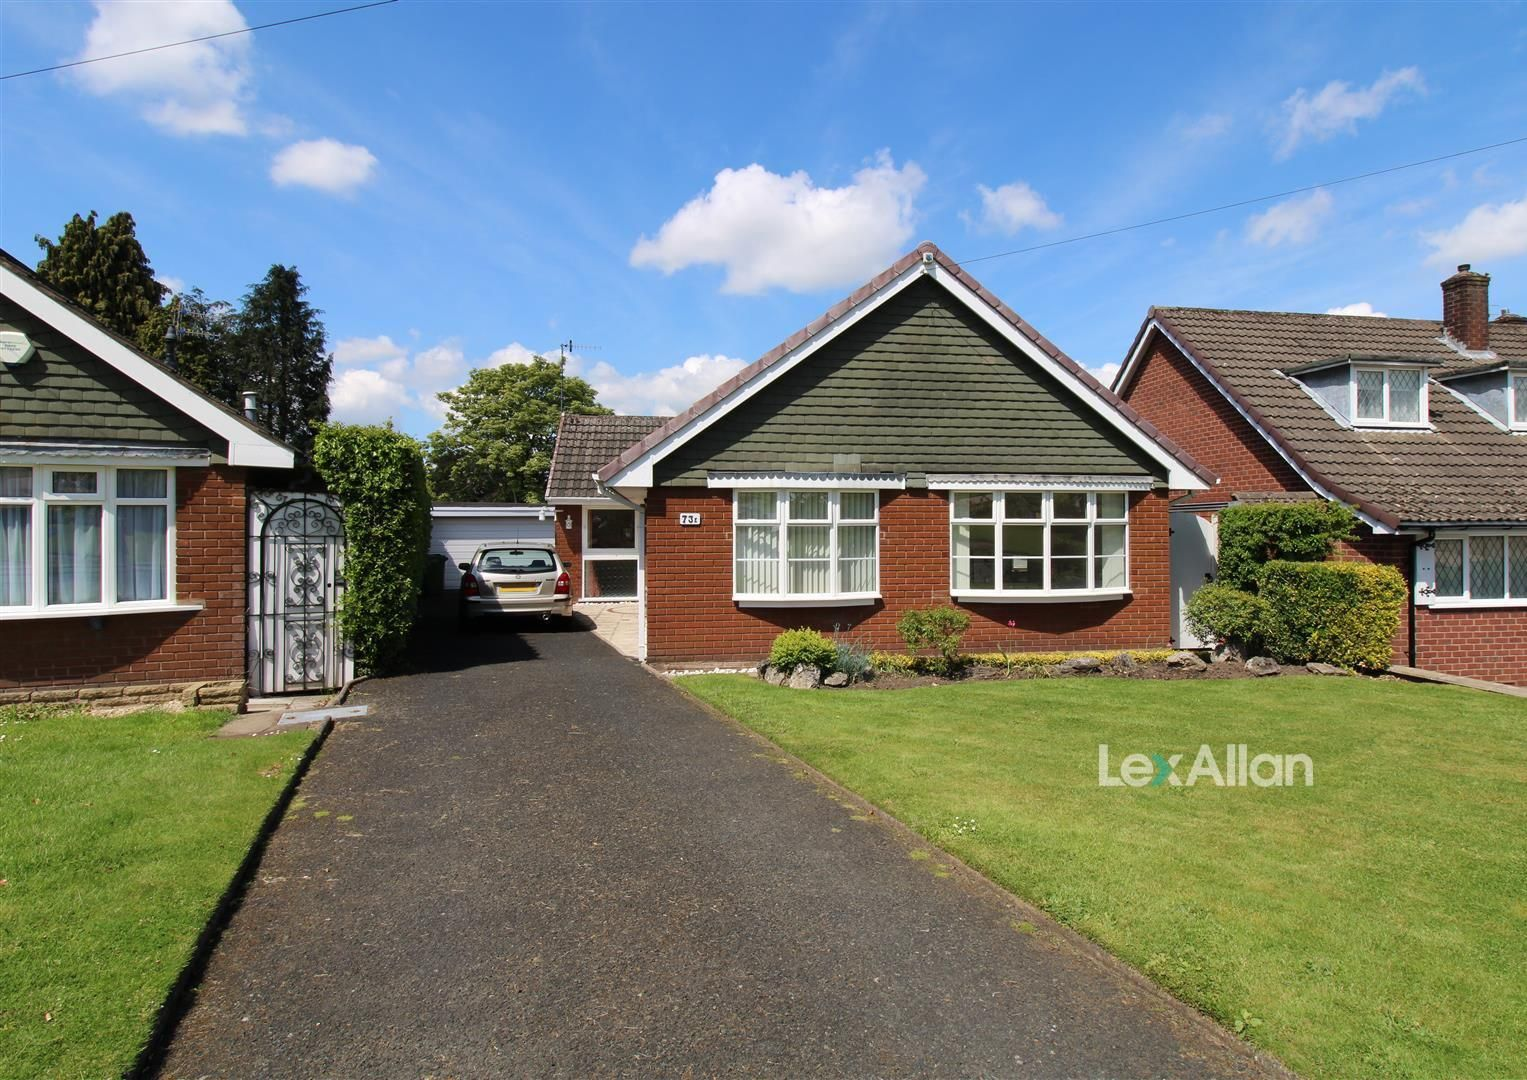 2 bed detached-bungalow for sale in Pedmore, DY9